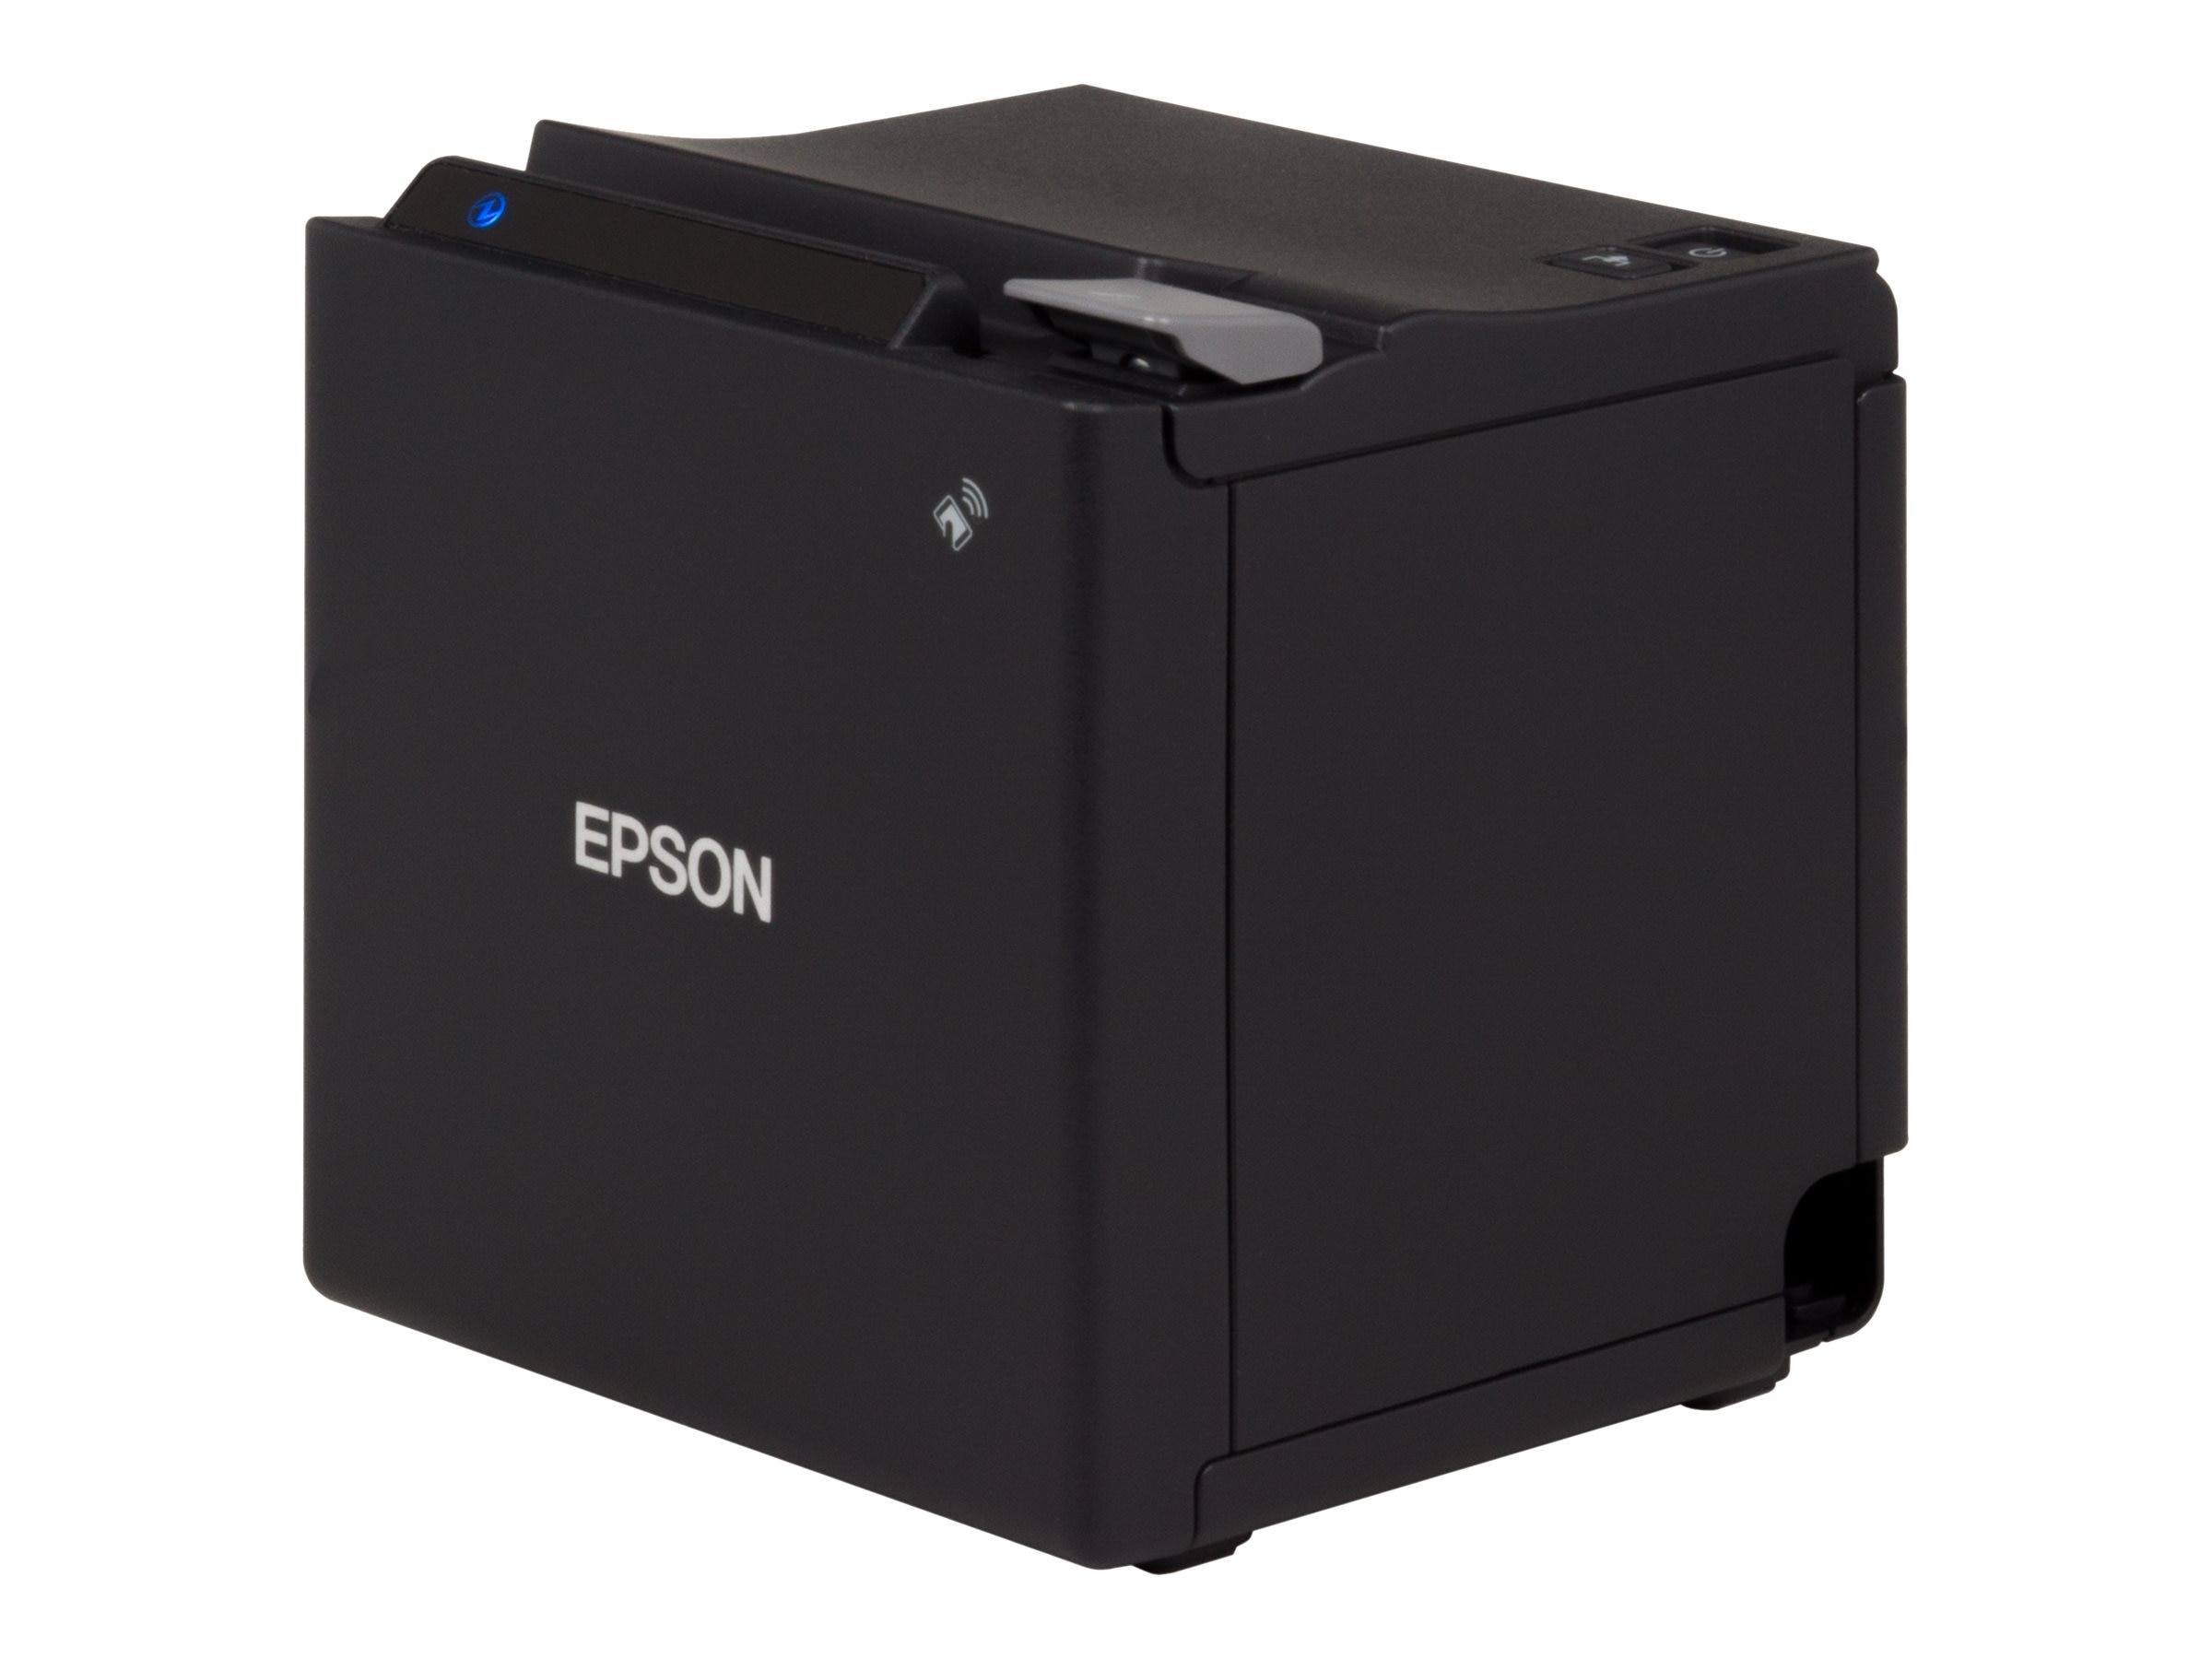 Epson TM-m10 USB Bluetooth POS Receipt Printer - Black, C31CE74012